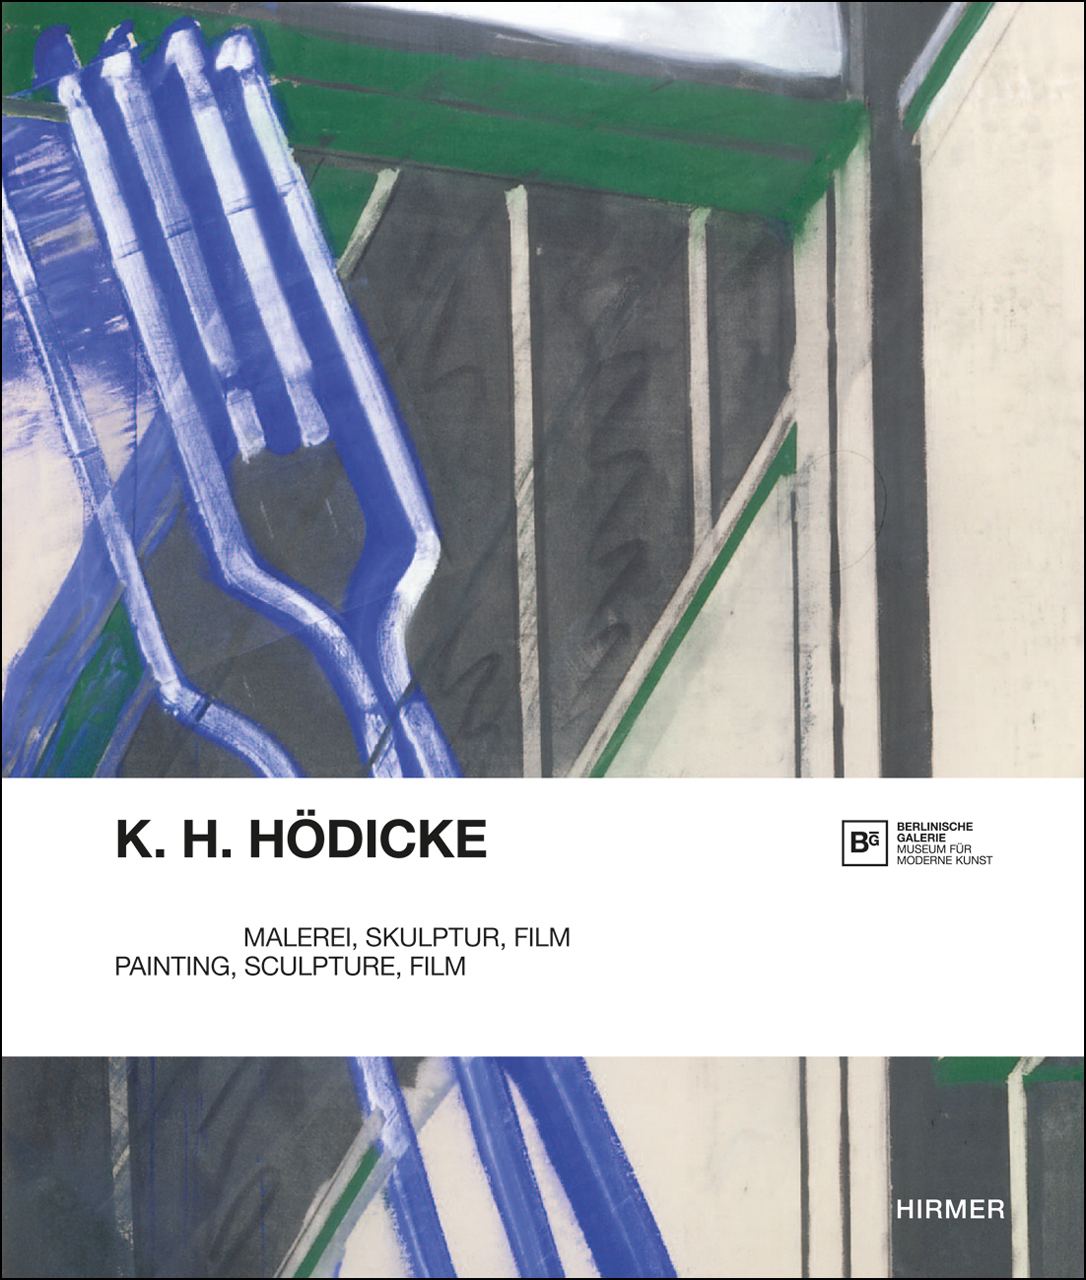 K. H. Hödicke: Painting, Sculpture, Film